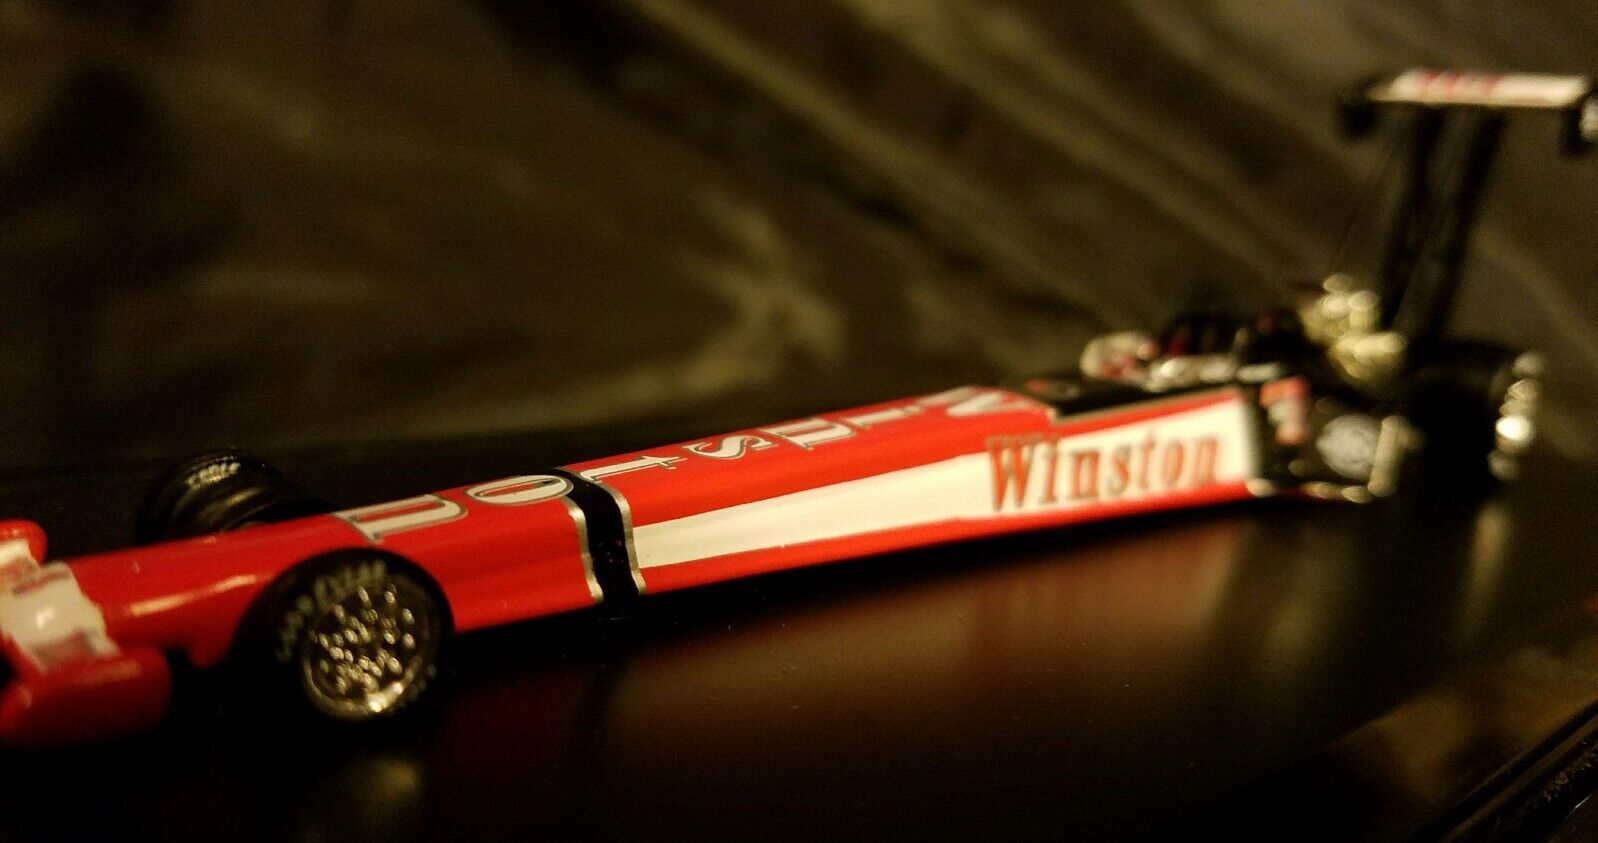 1998 Winston Dragster Dragster Dragster 1 64 scale 42fb68